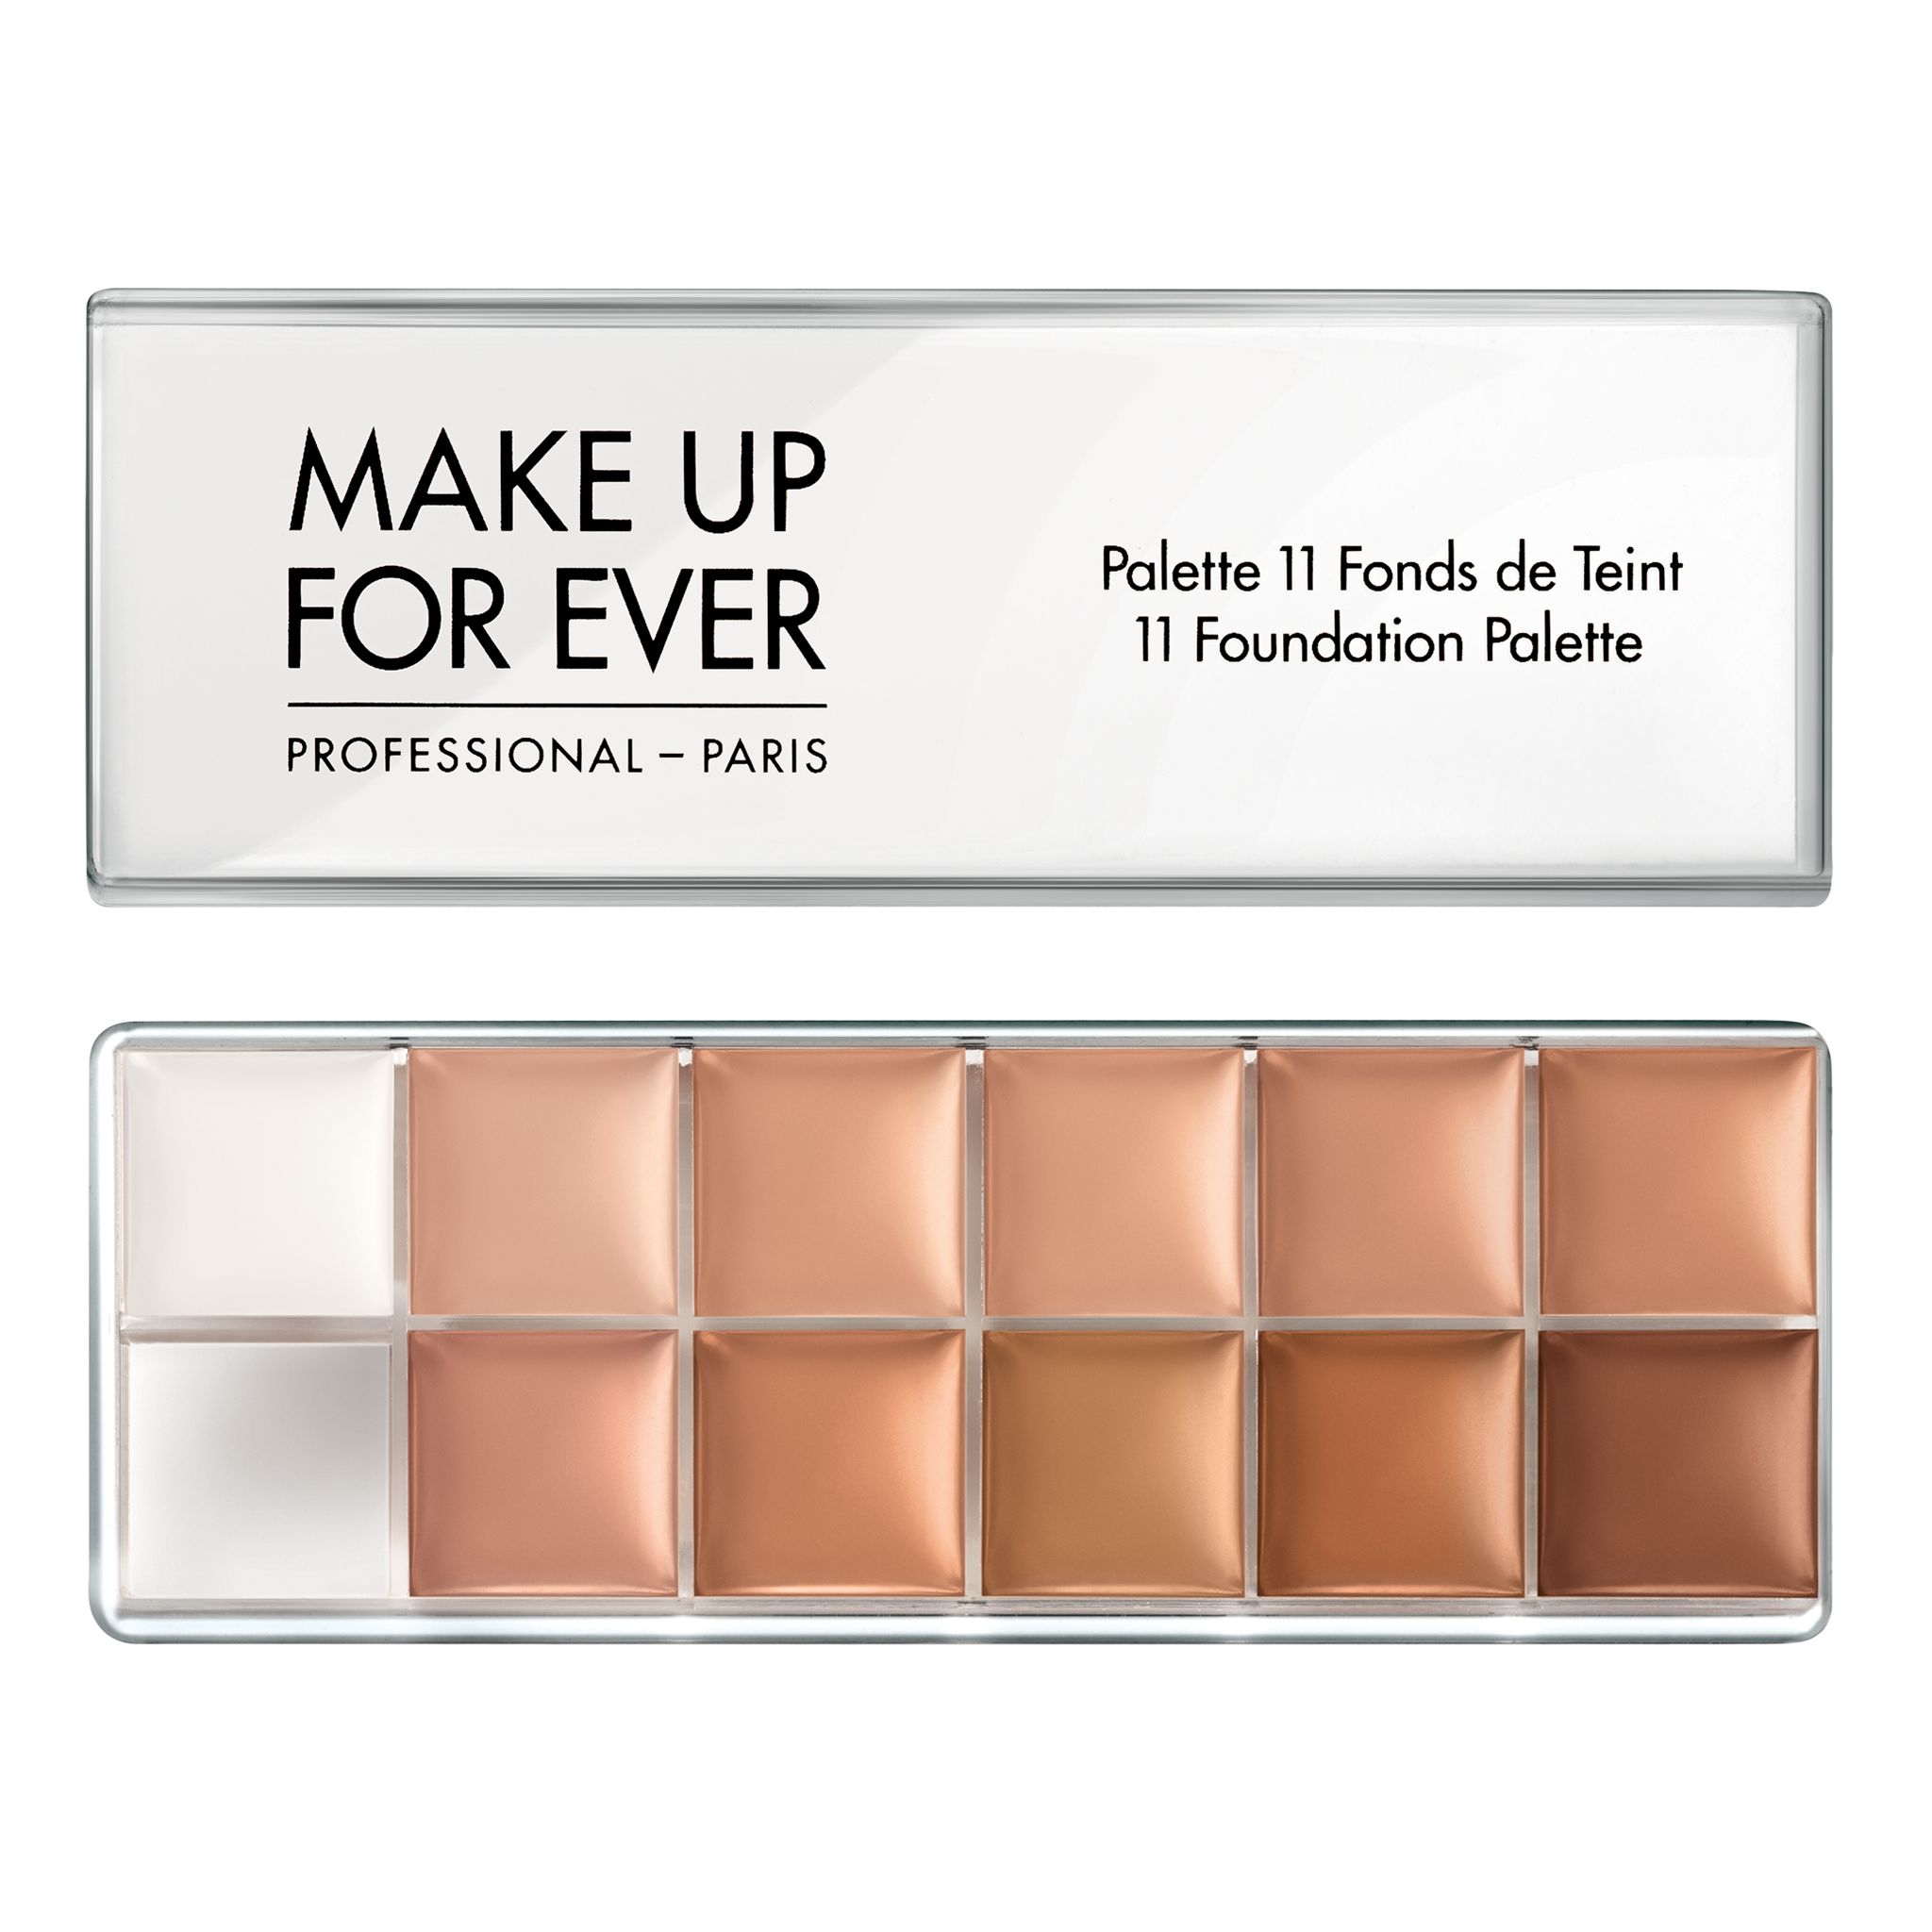 11 Foundation Palette Foundation MAKE UP FOR EVER